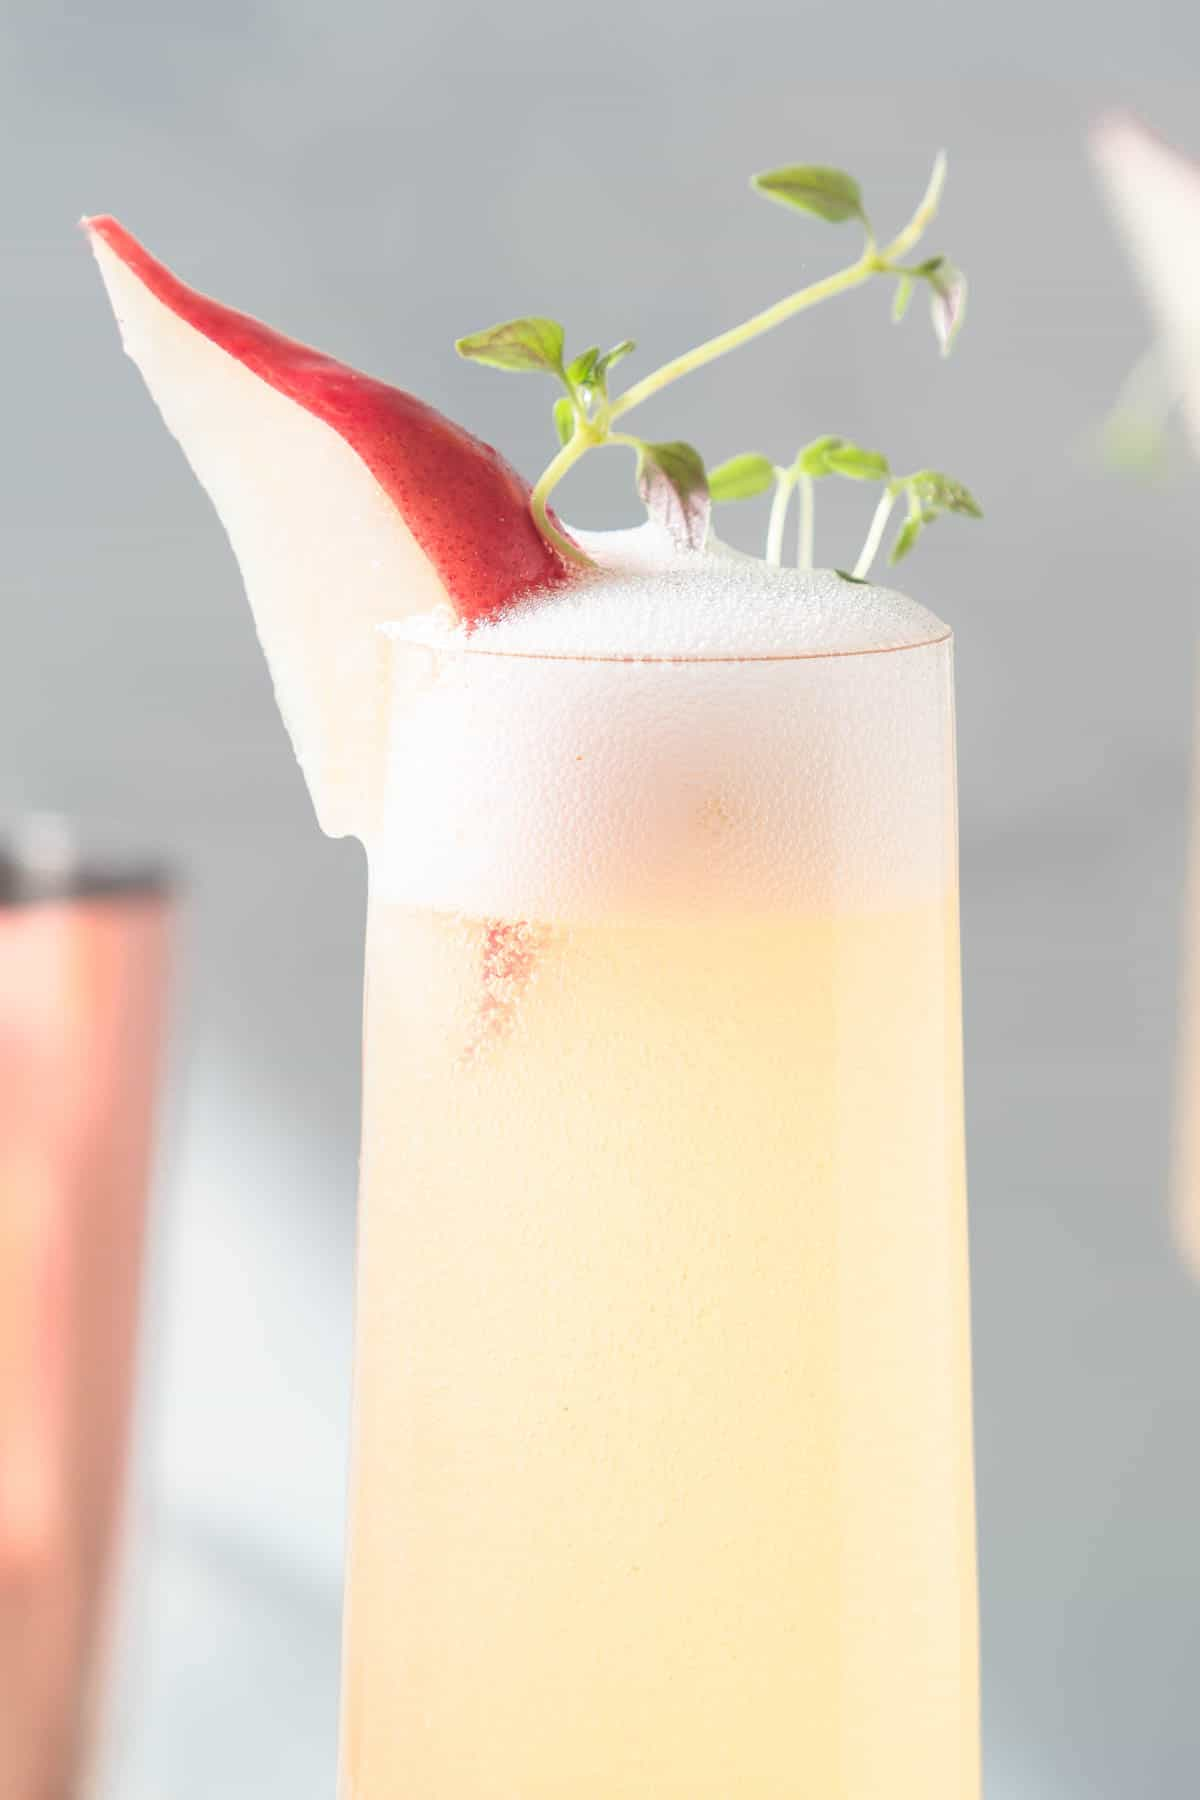 Close up of a champagne flute filled with a yellow drink and garnished with a slice of red pear and thyme